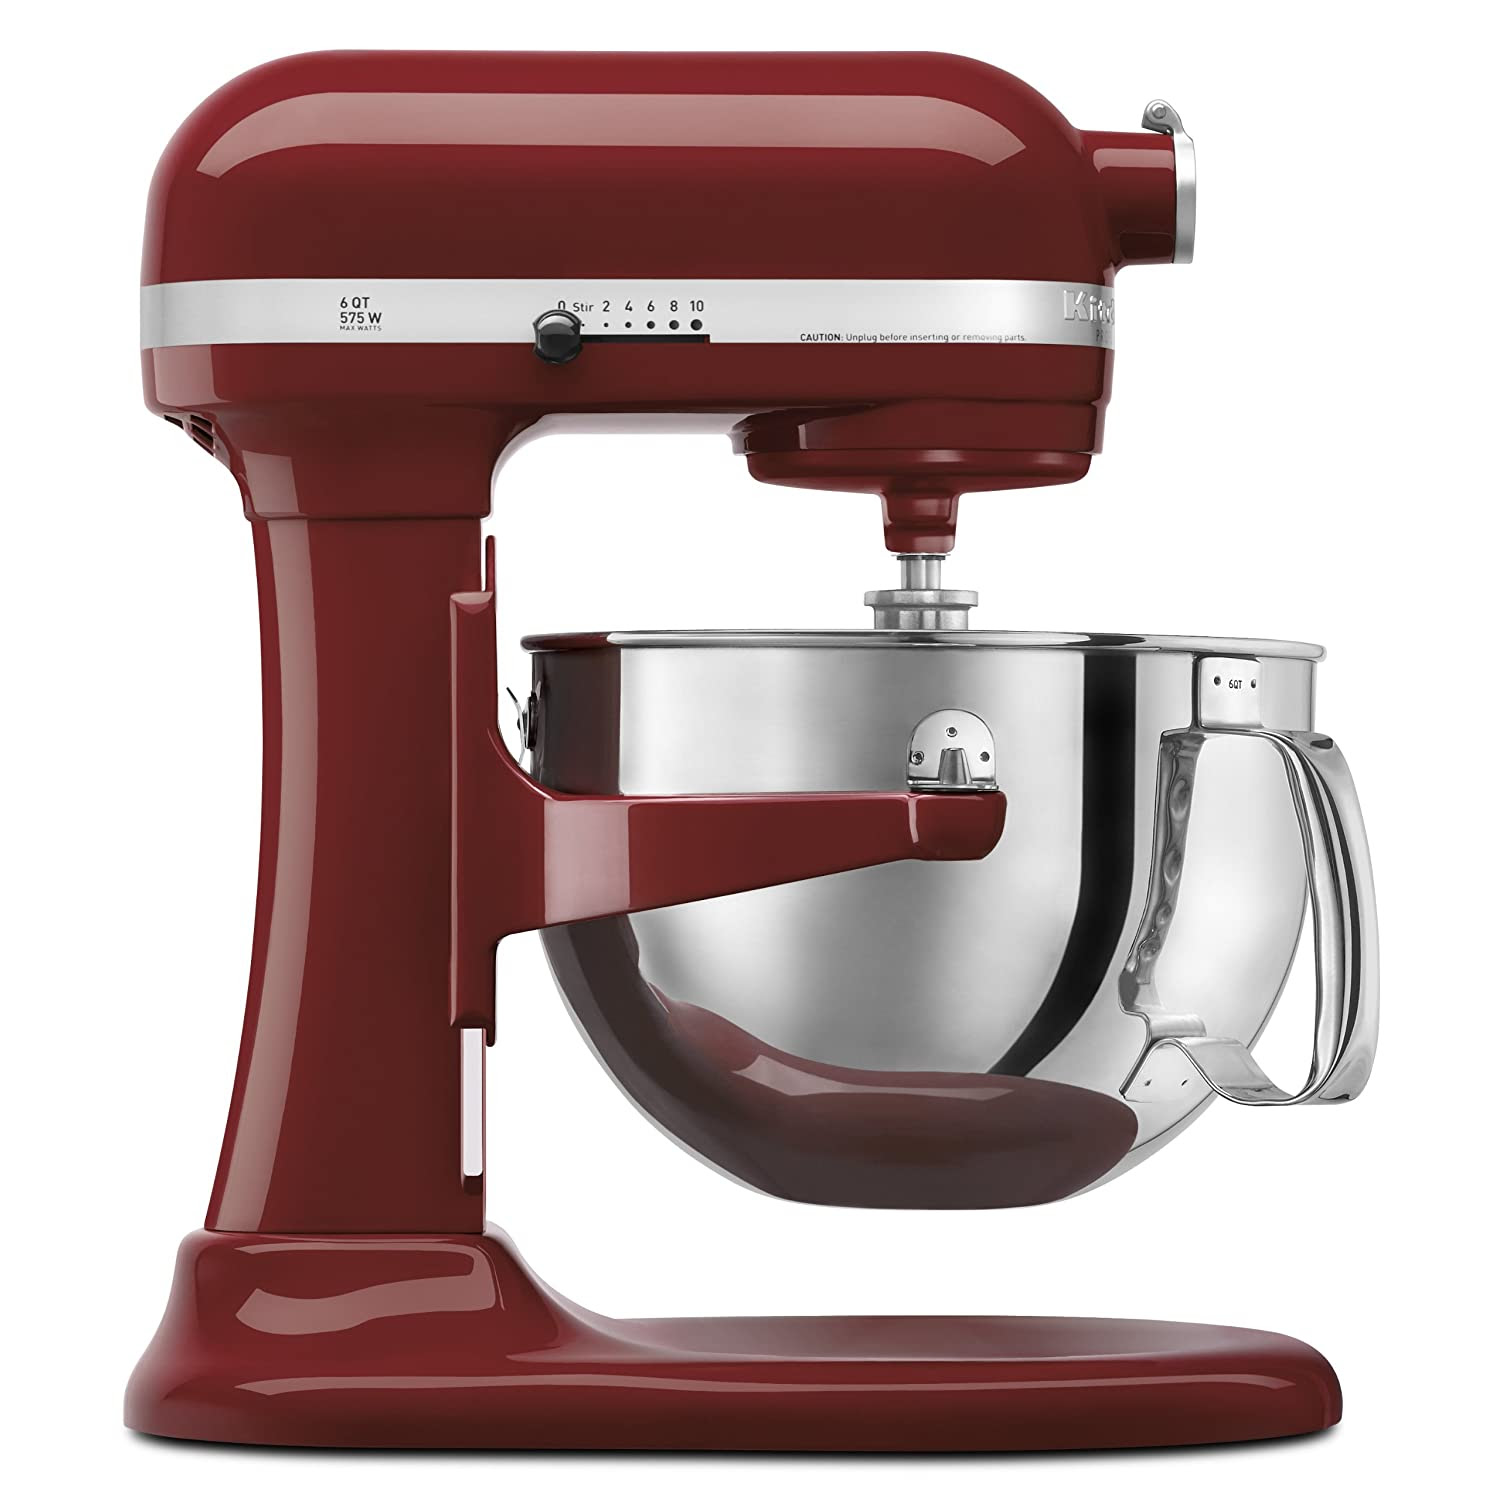 Kitchenaid Professional 600 Series Rebate Matthew 18 Movie Wikipedia